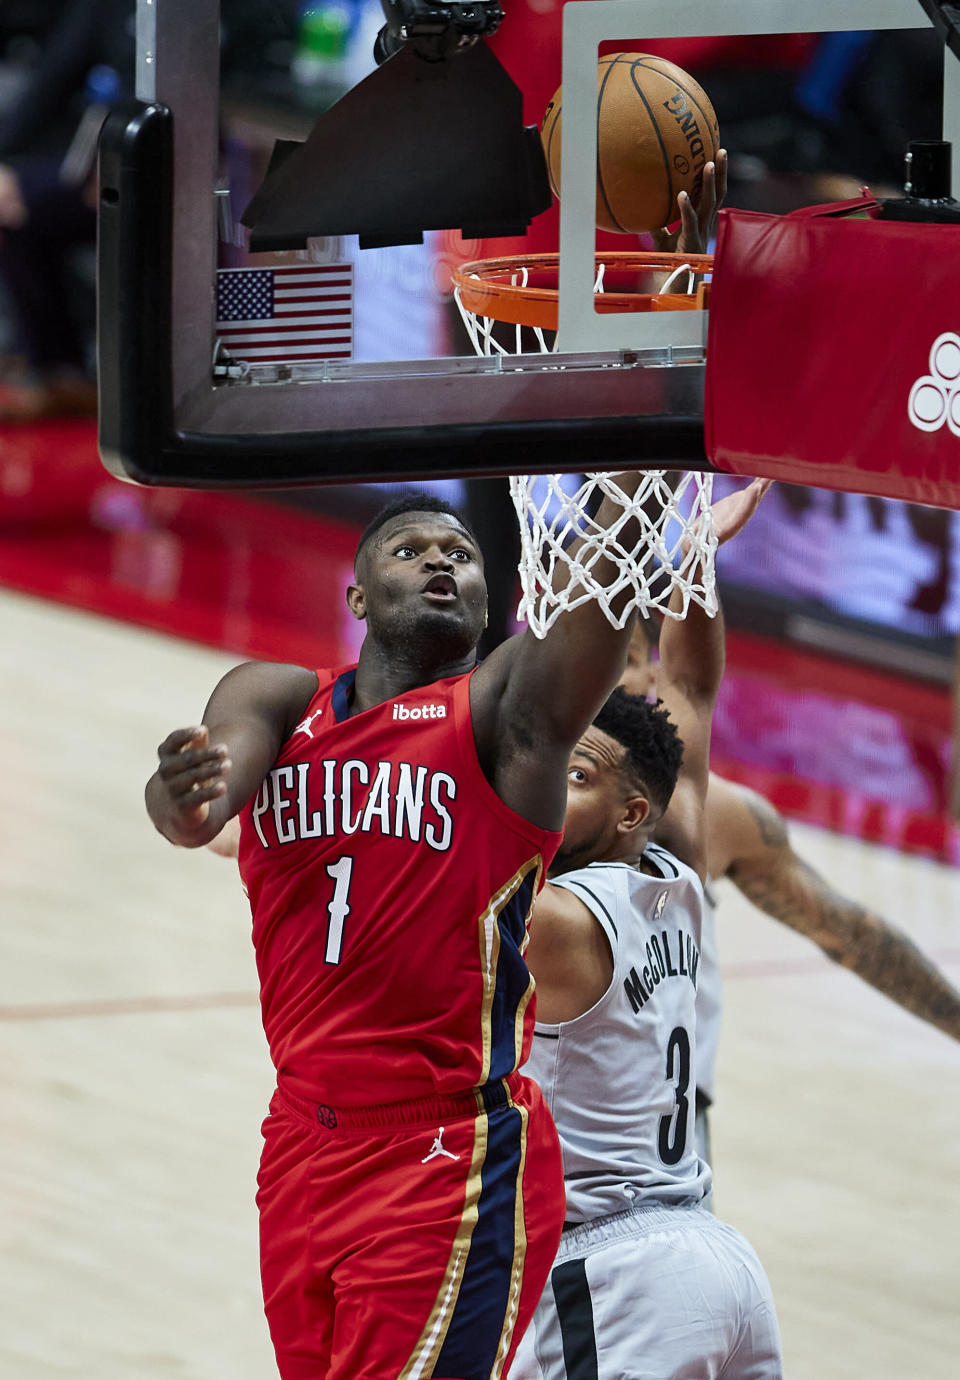 New Orleans Pelicans forward Zion Williamson, left, shoots in front of Portland Trail Blazers guard CJ McCollum during the first half of an NBA basketball game in Portland, Ore., Tuesday, March 16, 2021. (AP Photo/Craig Mitchelldyer)